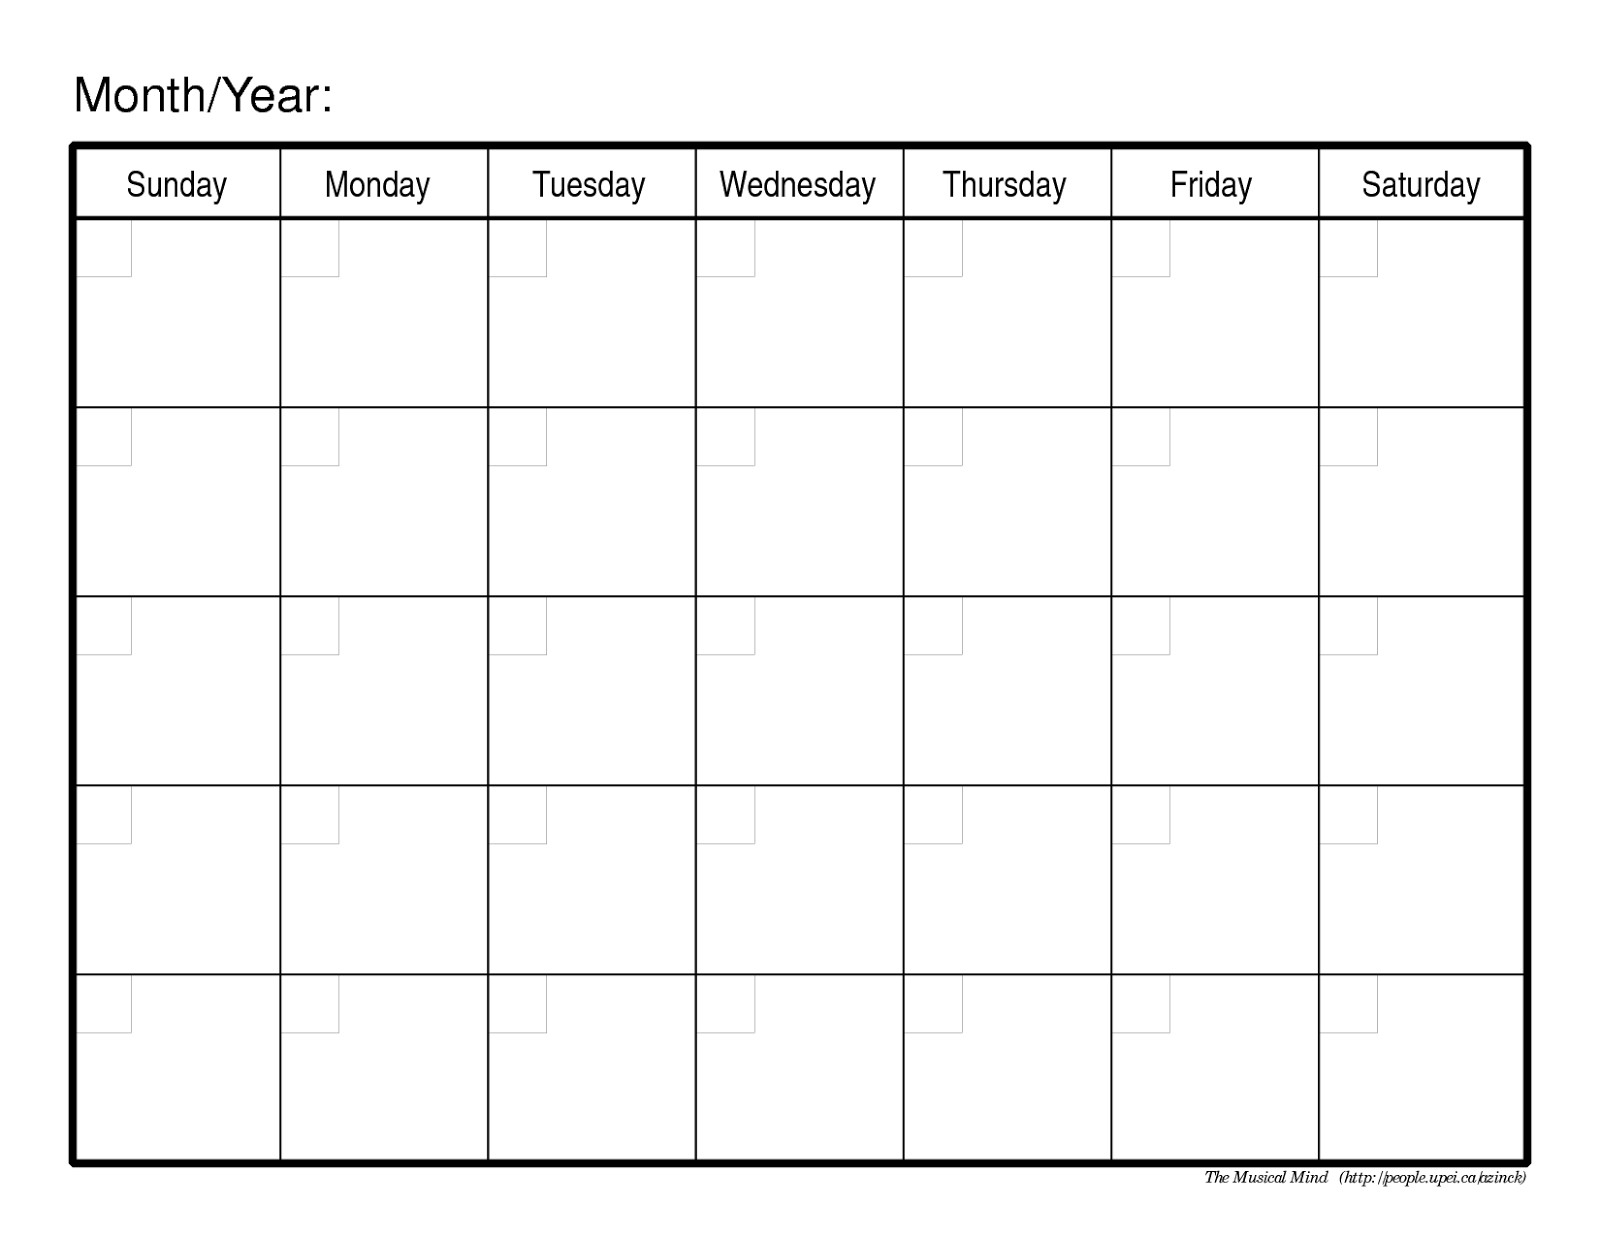 Monthly Calendar No Dates – Printable Month Calendar-Blank Calendar No Dates